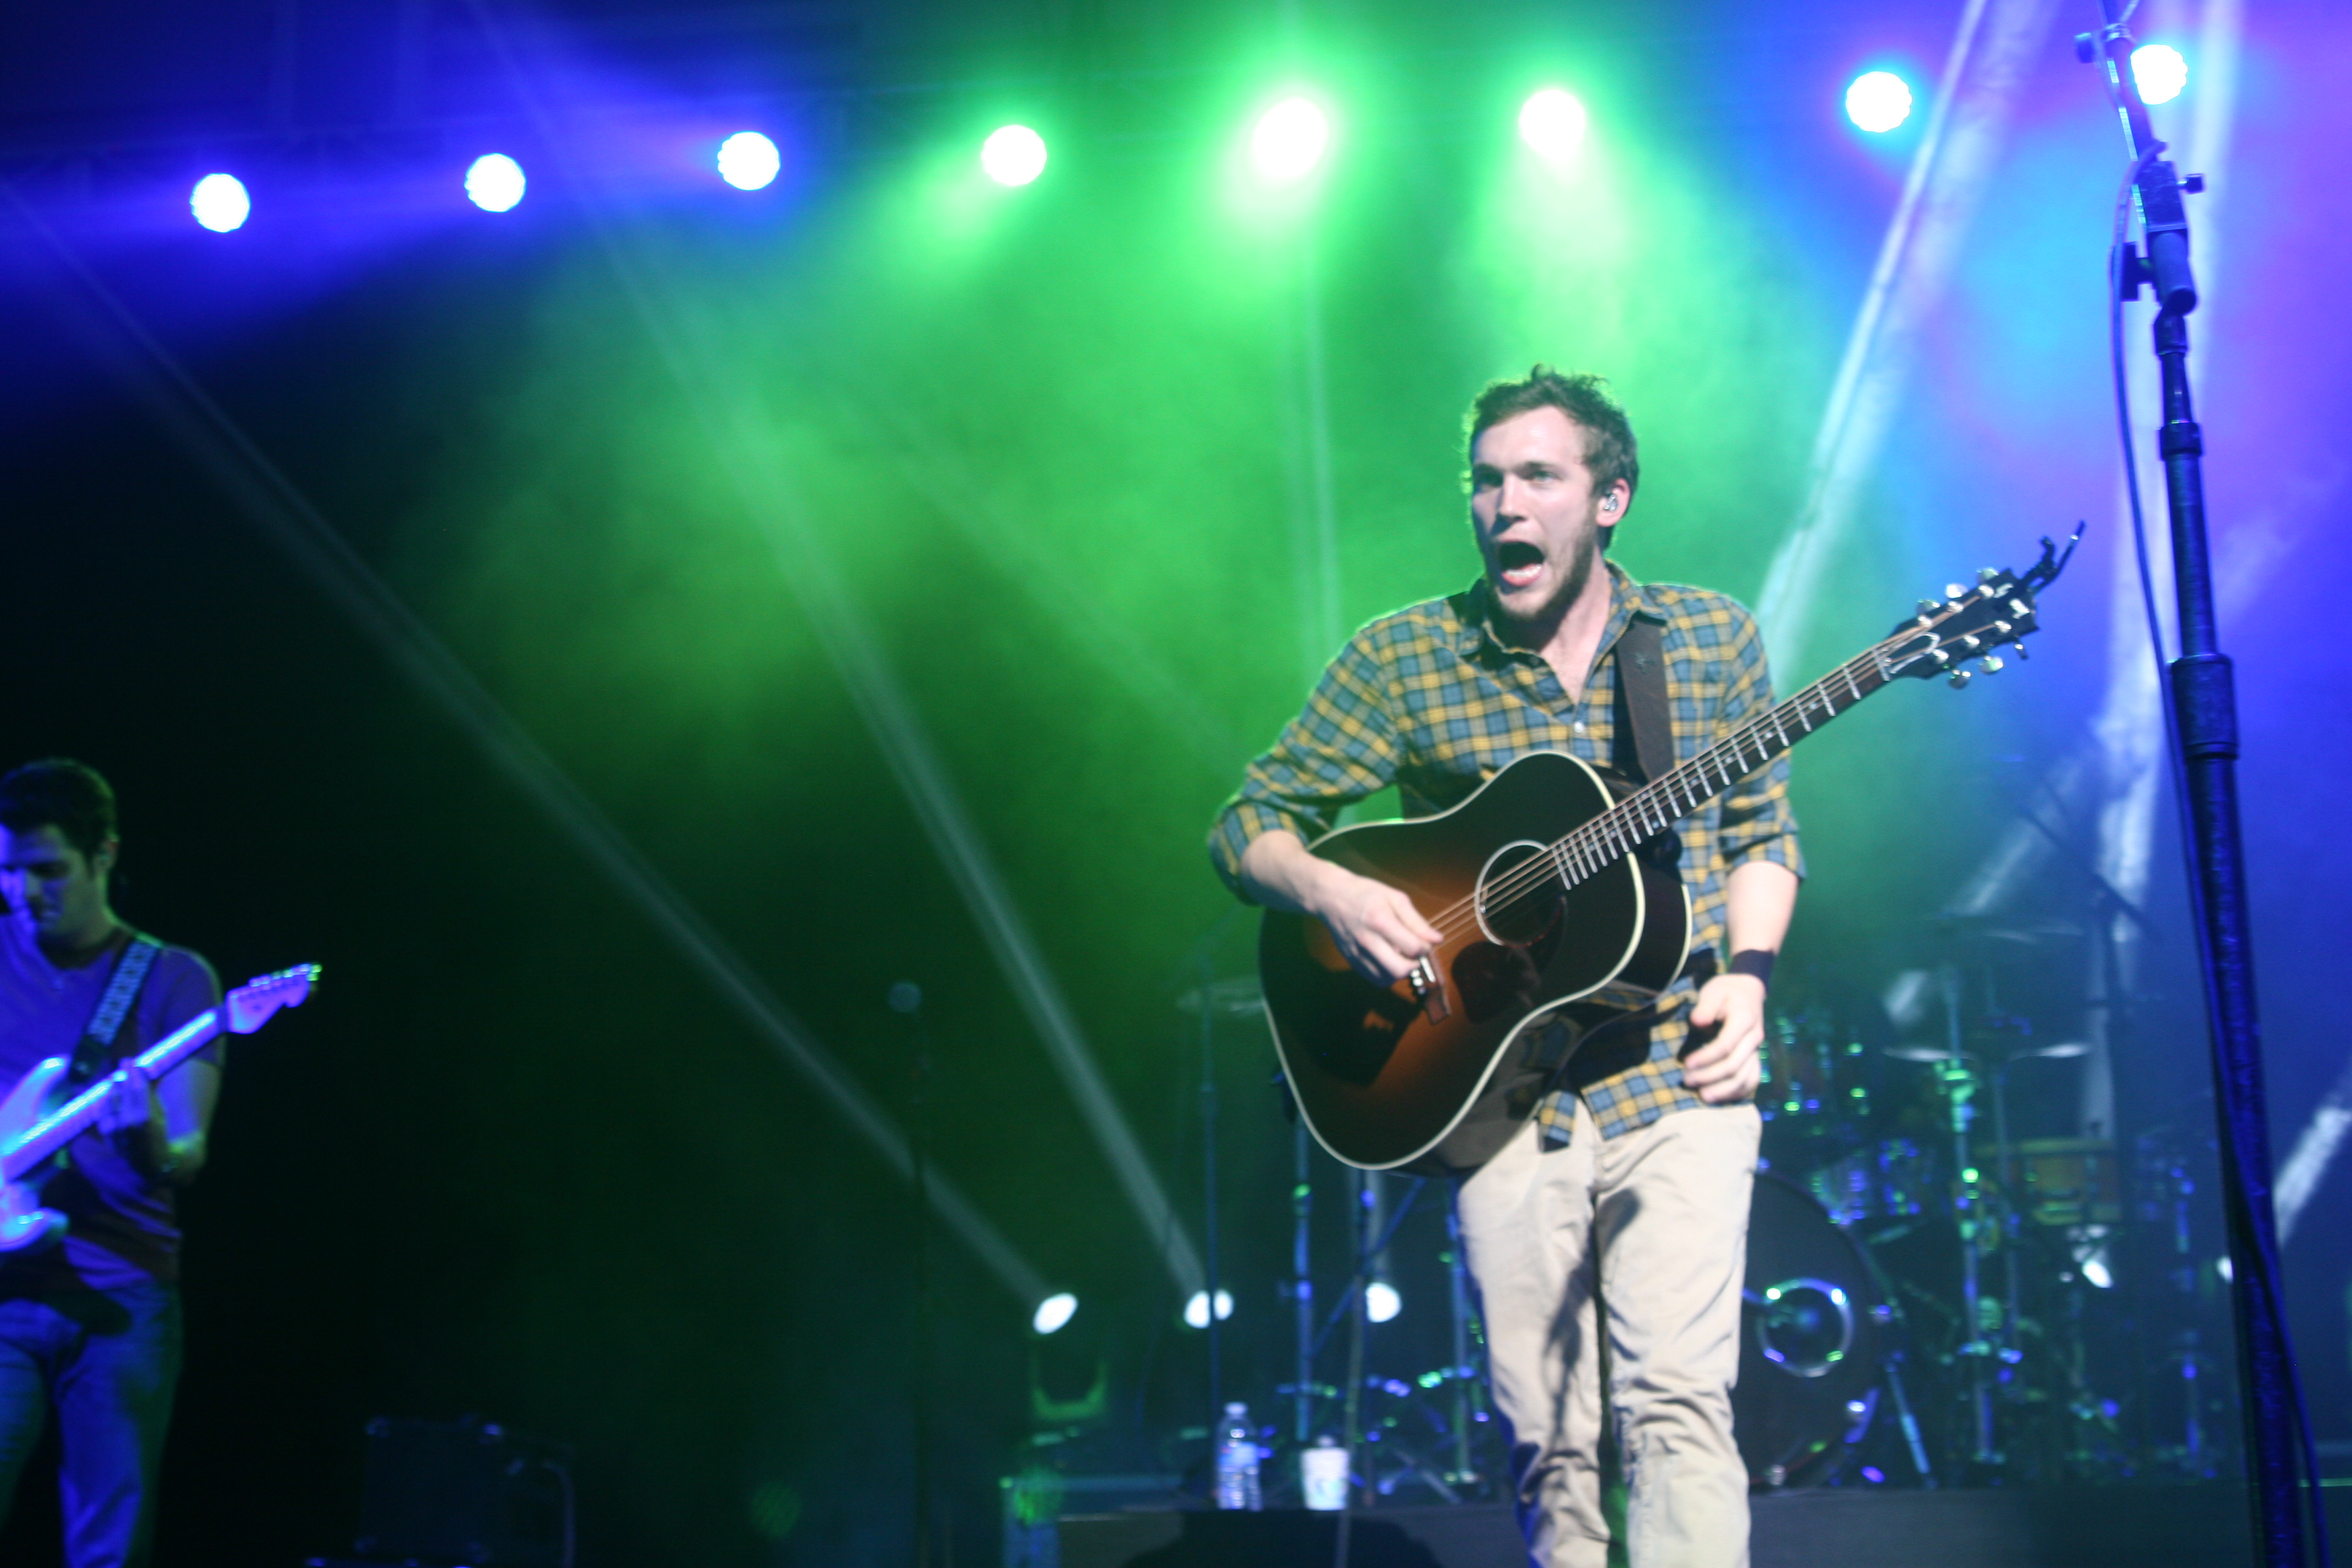 Phillip Phillips performs live at UC San Diego on Thursday, Dec. 4, 2014. (photo by Bill Pinella)